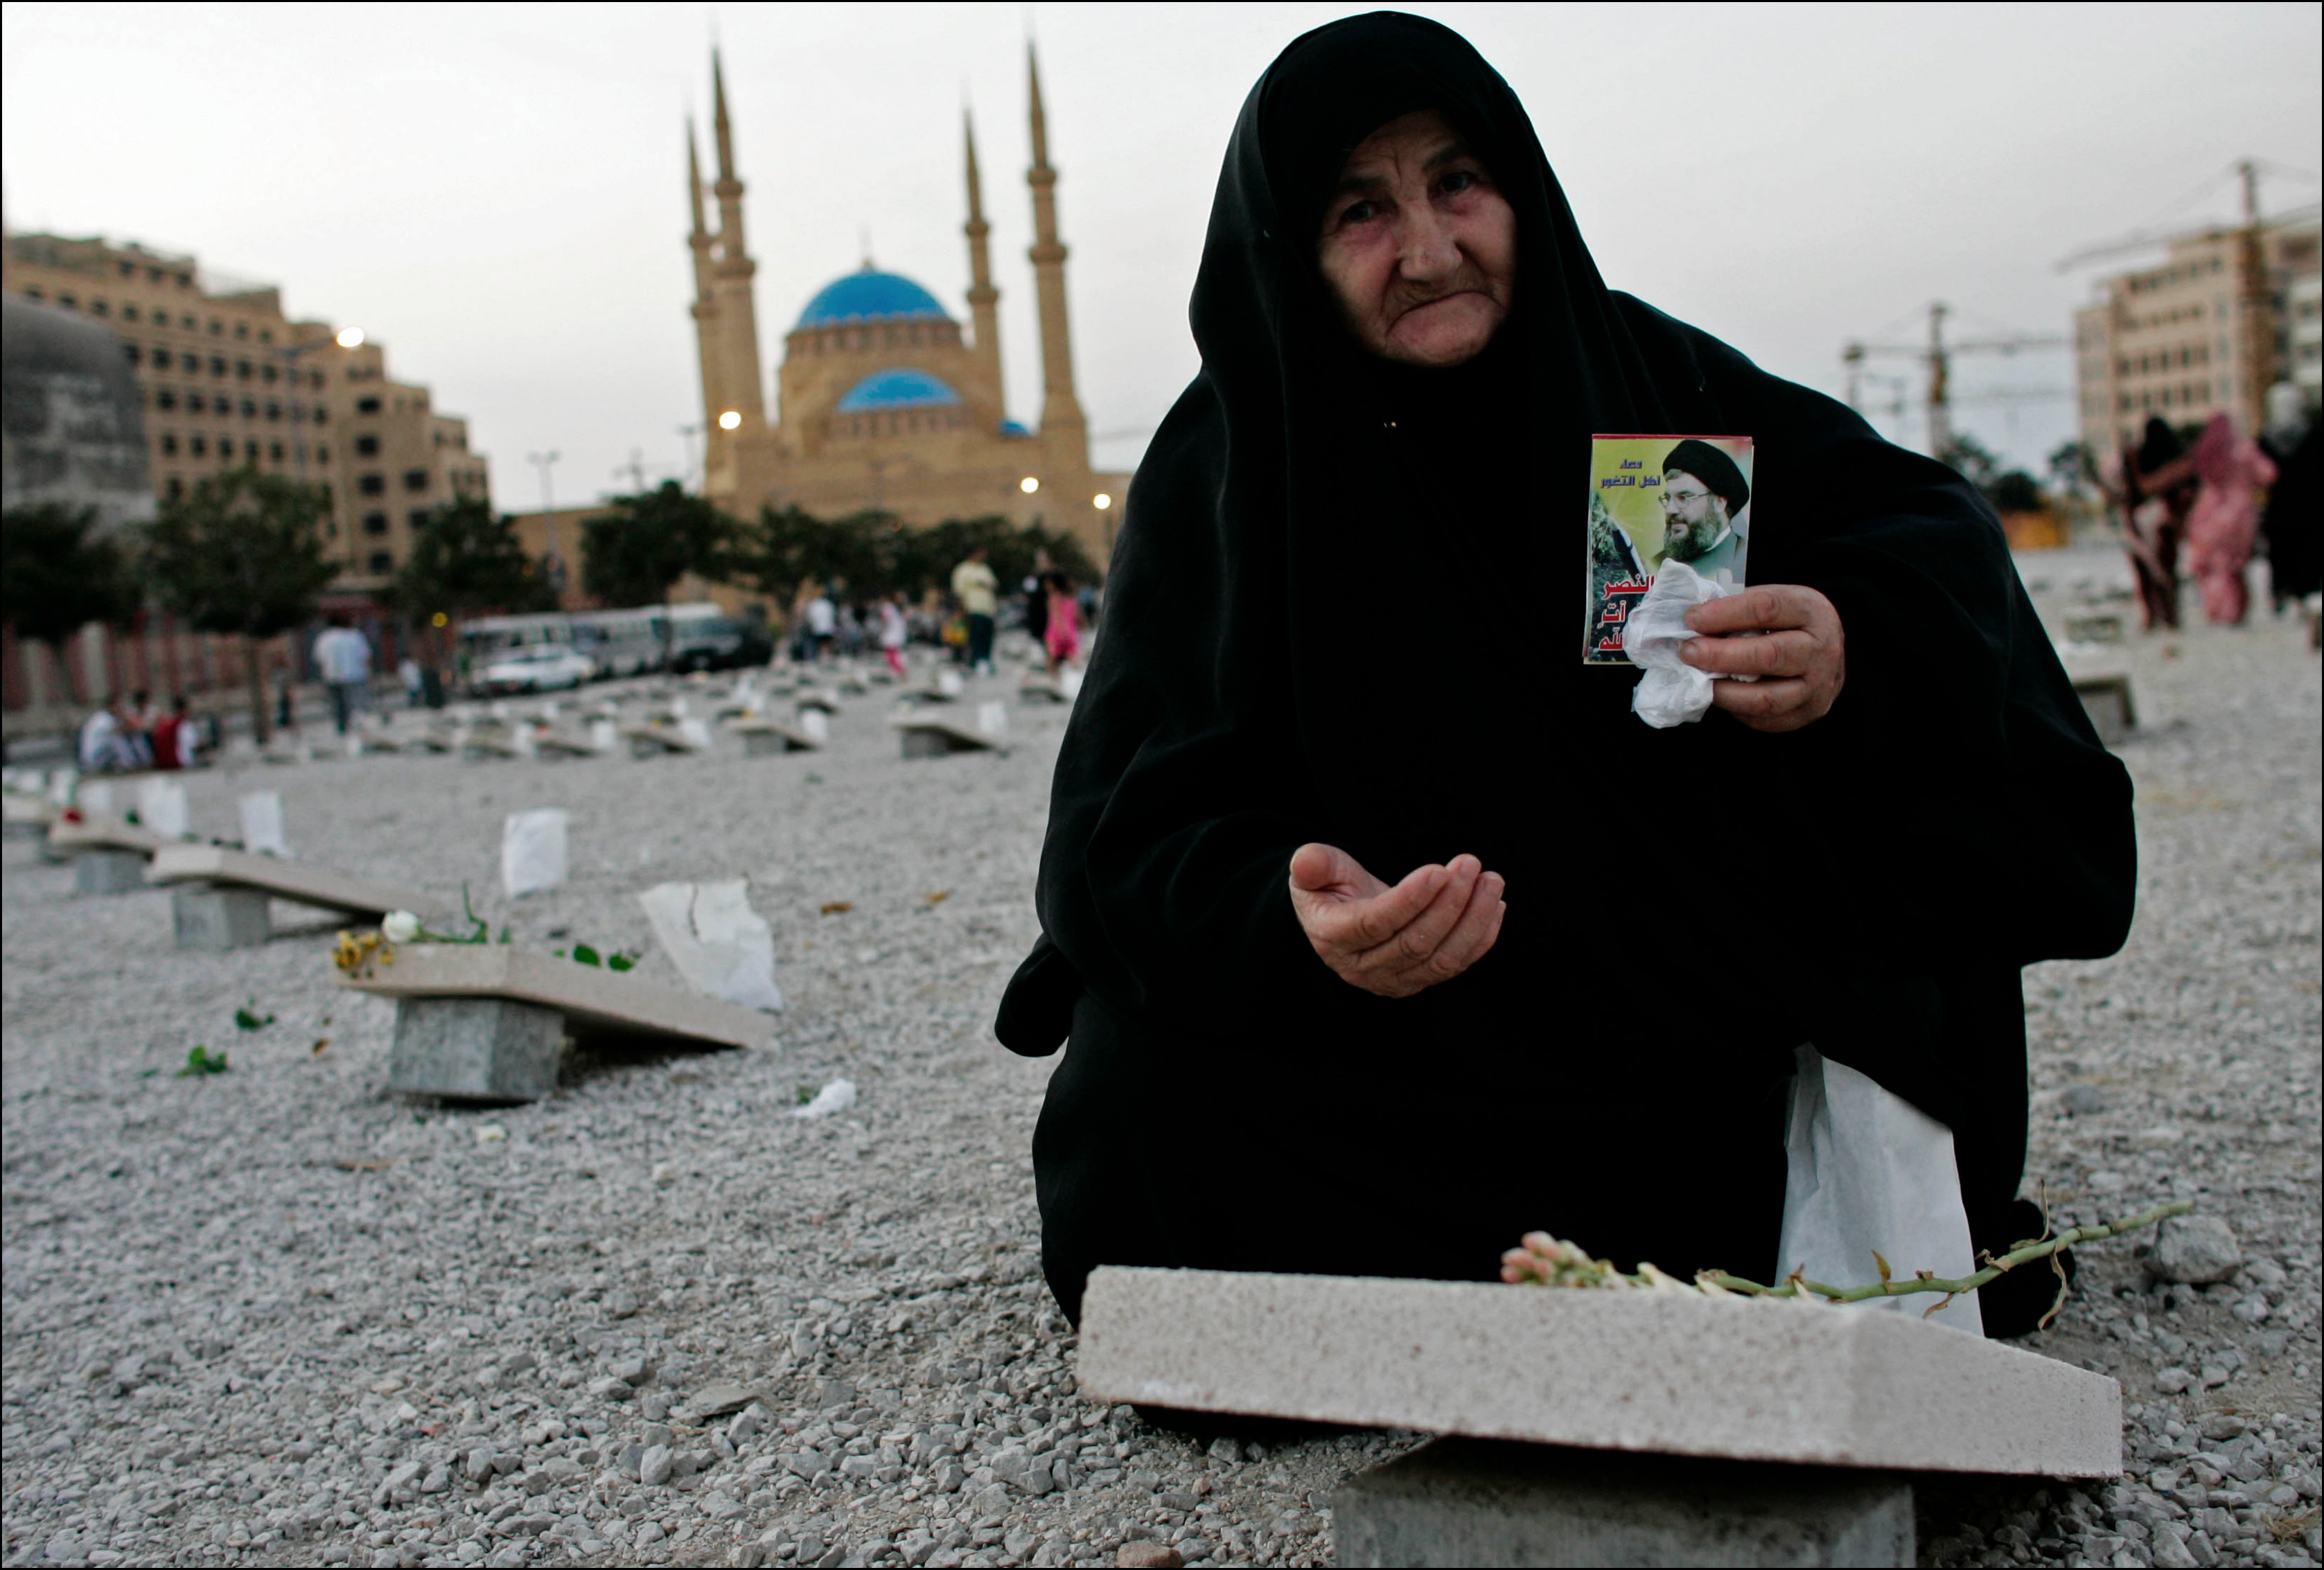 On Beirut's central Martyr's square, a Shiite woman shows a portrait of Hizbollah leader Sayed Hassan Nasrallah over a symbolic tombstone for the Lebanese victims of the Israeli offensive.